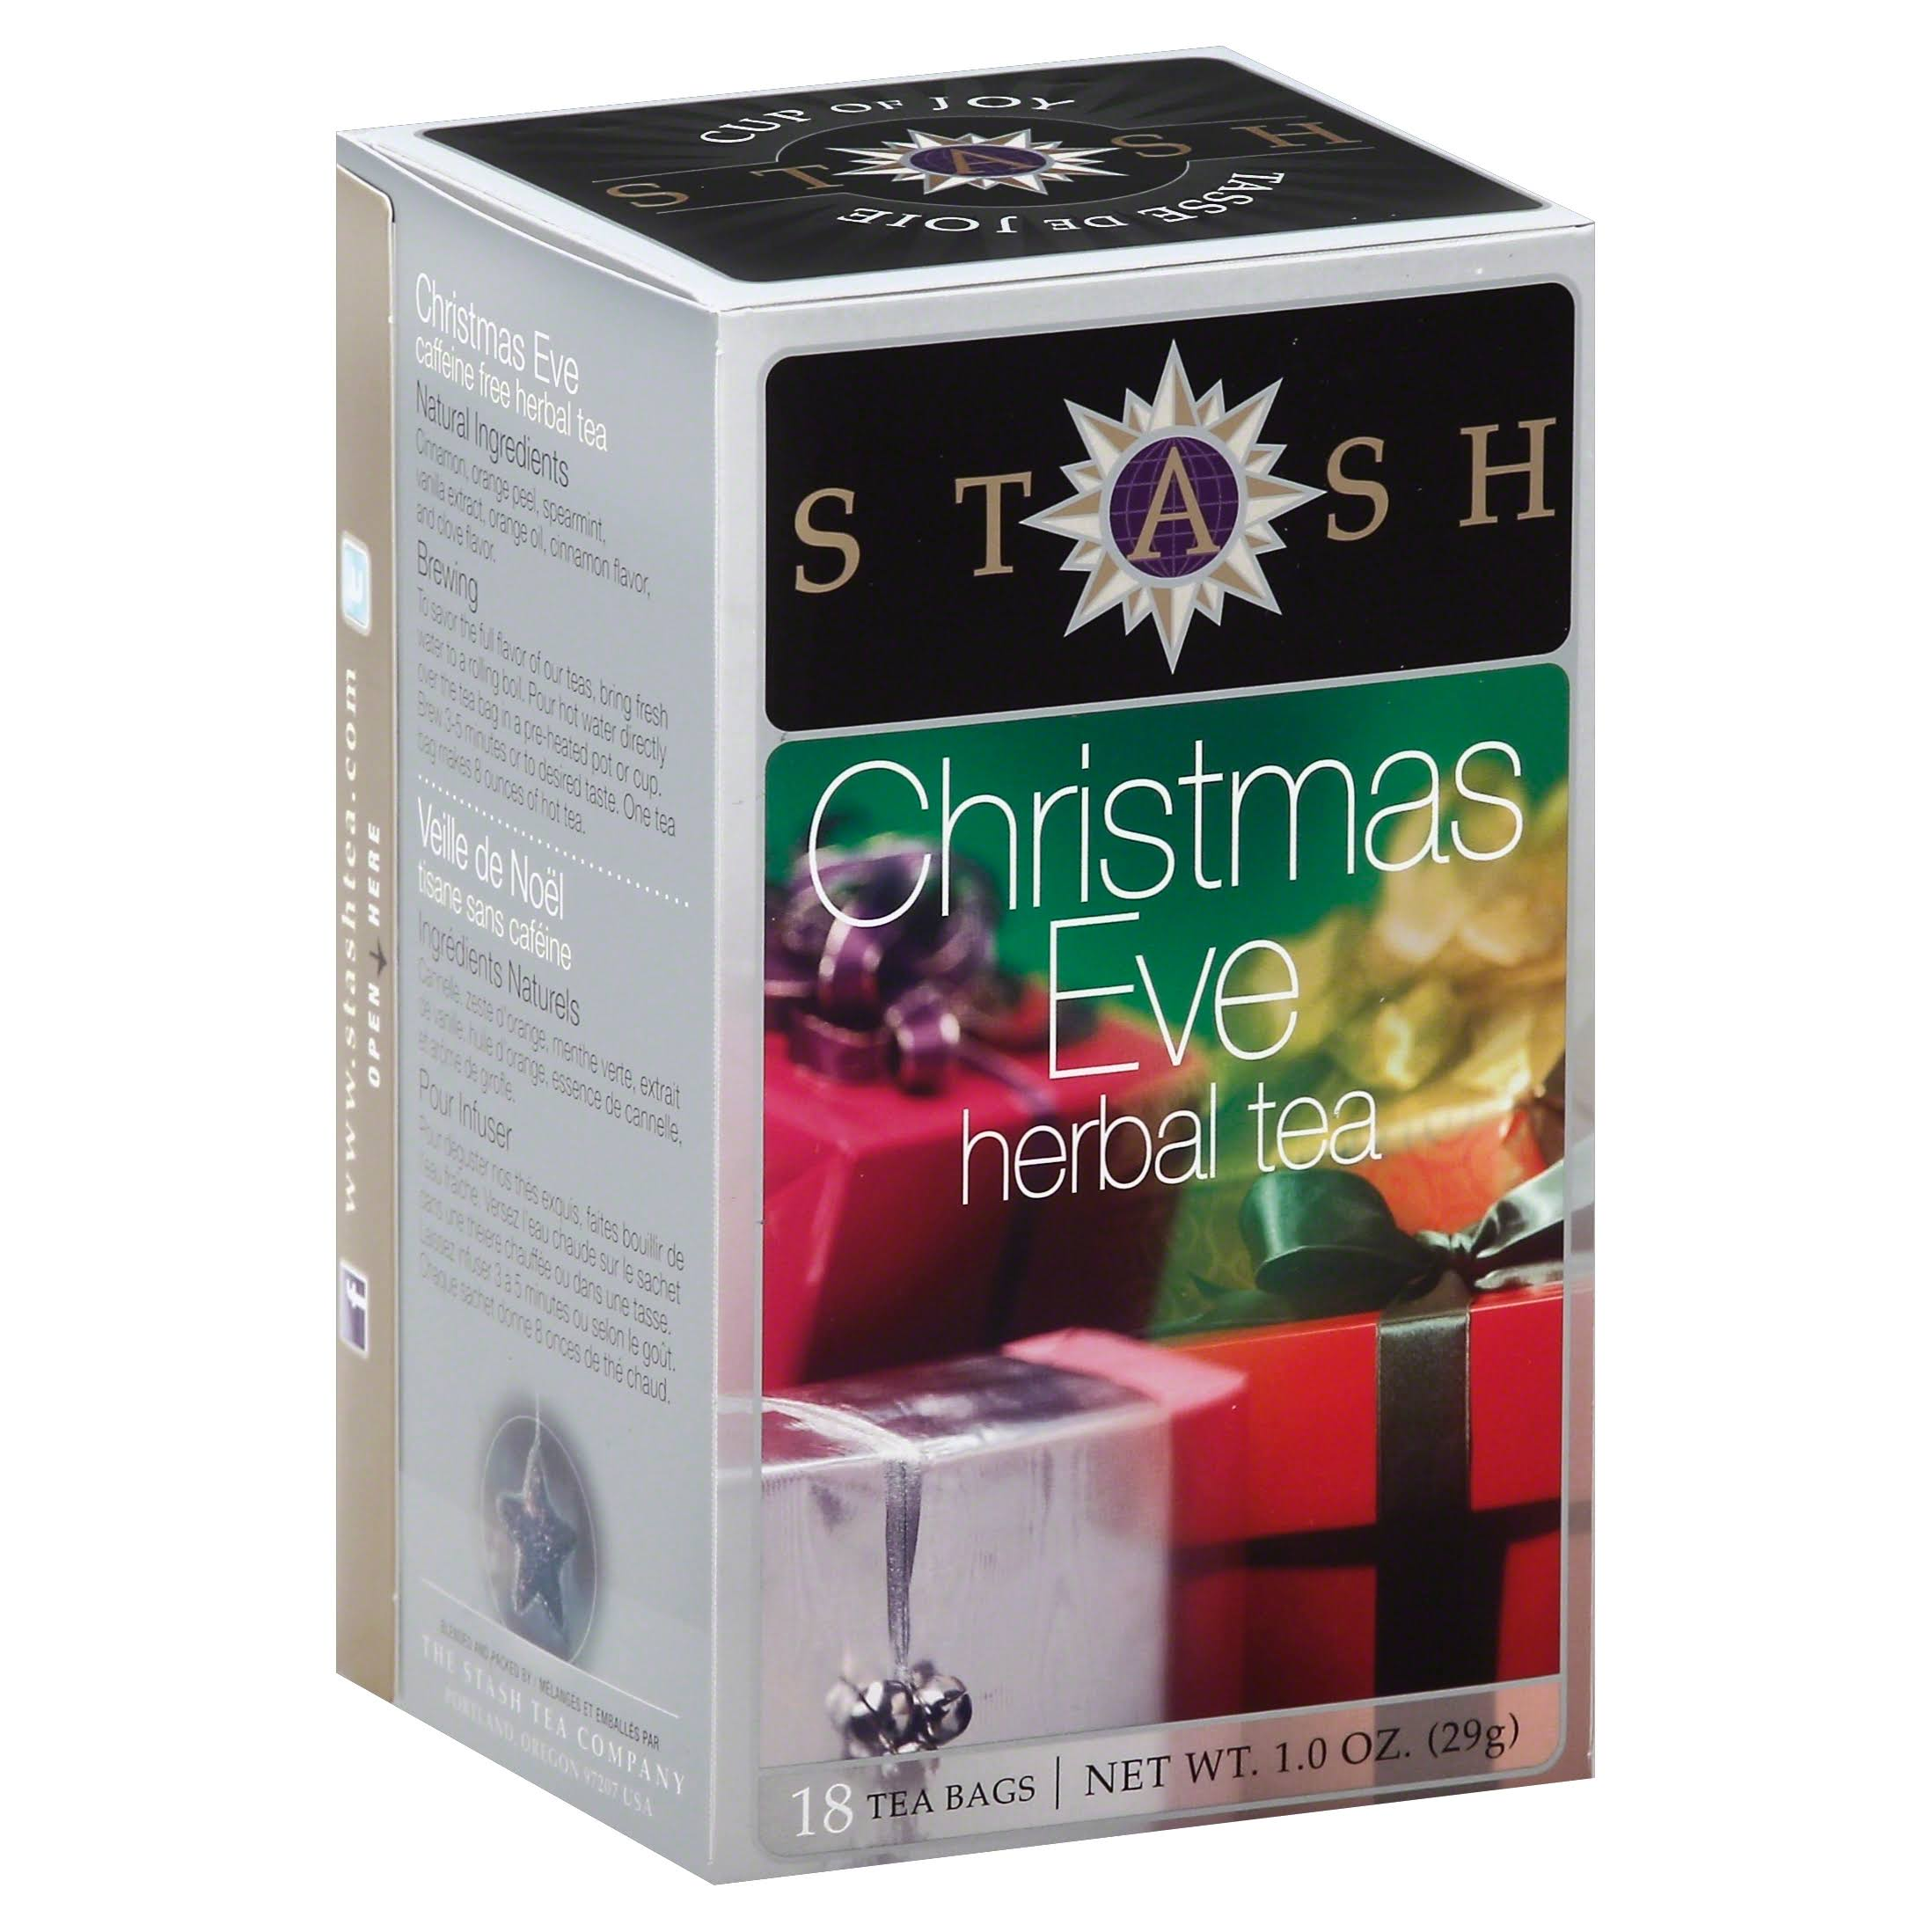 Stash Premium Christmas Eve Herbal Tea - 18 Tea Bags